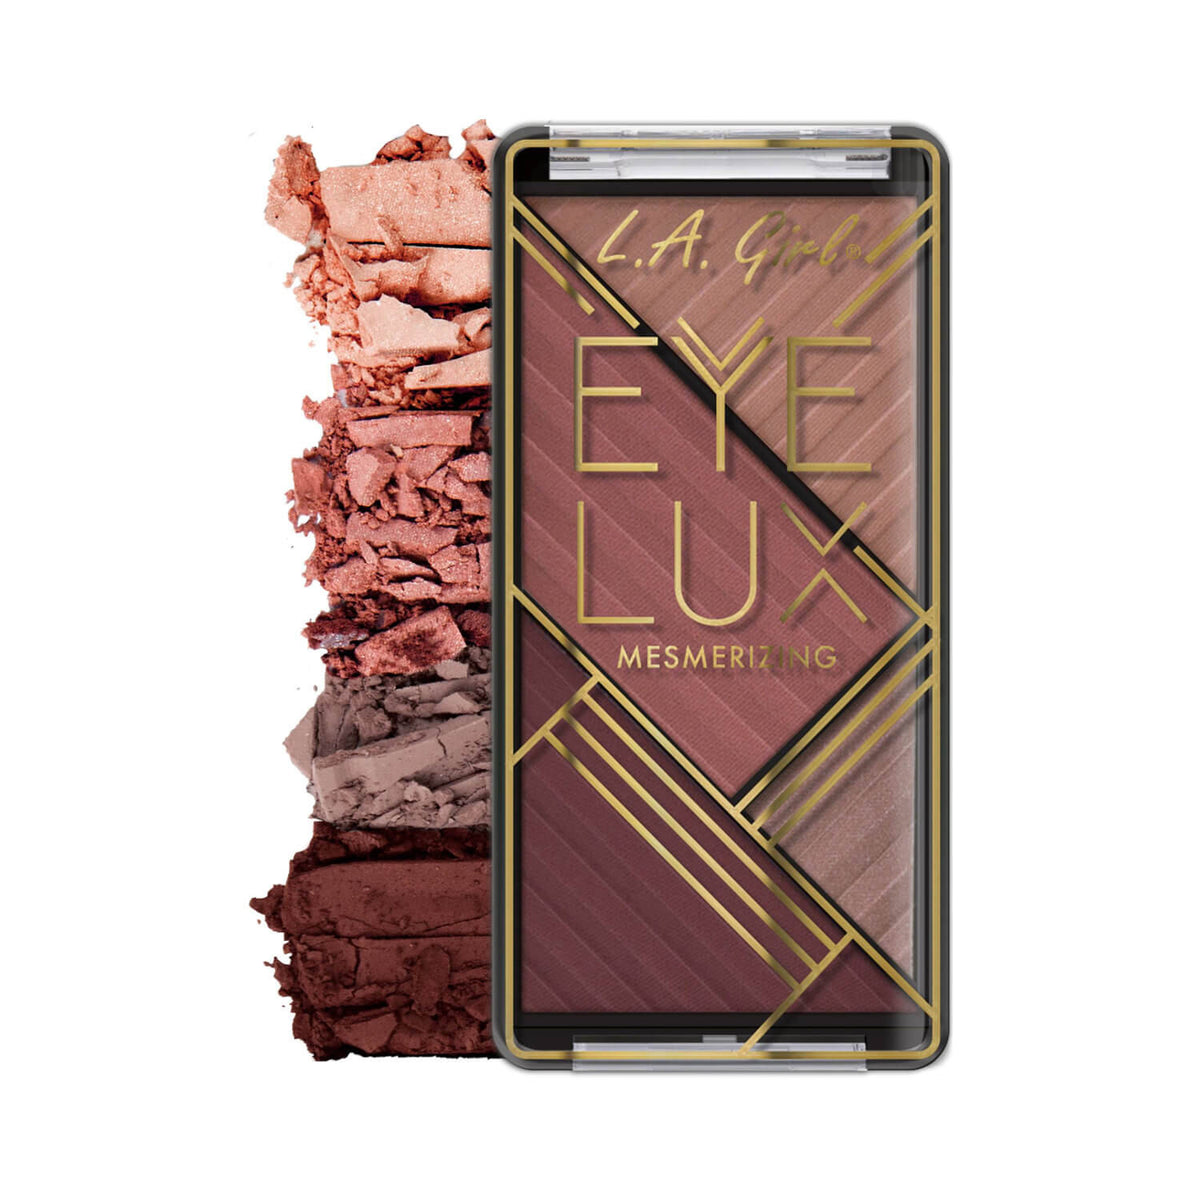 LA Girl Eye Lux Eyeshadow GES463 Sensualize